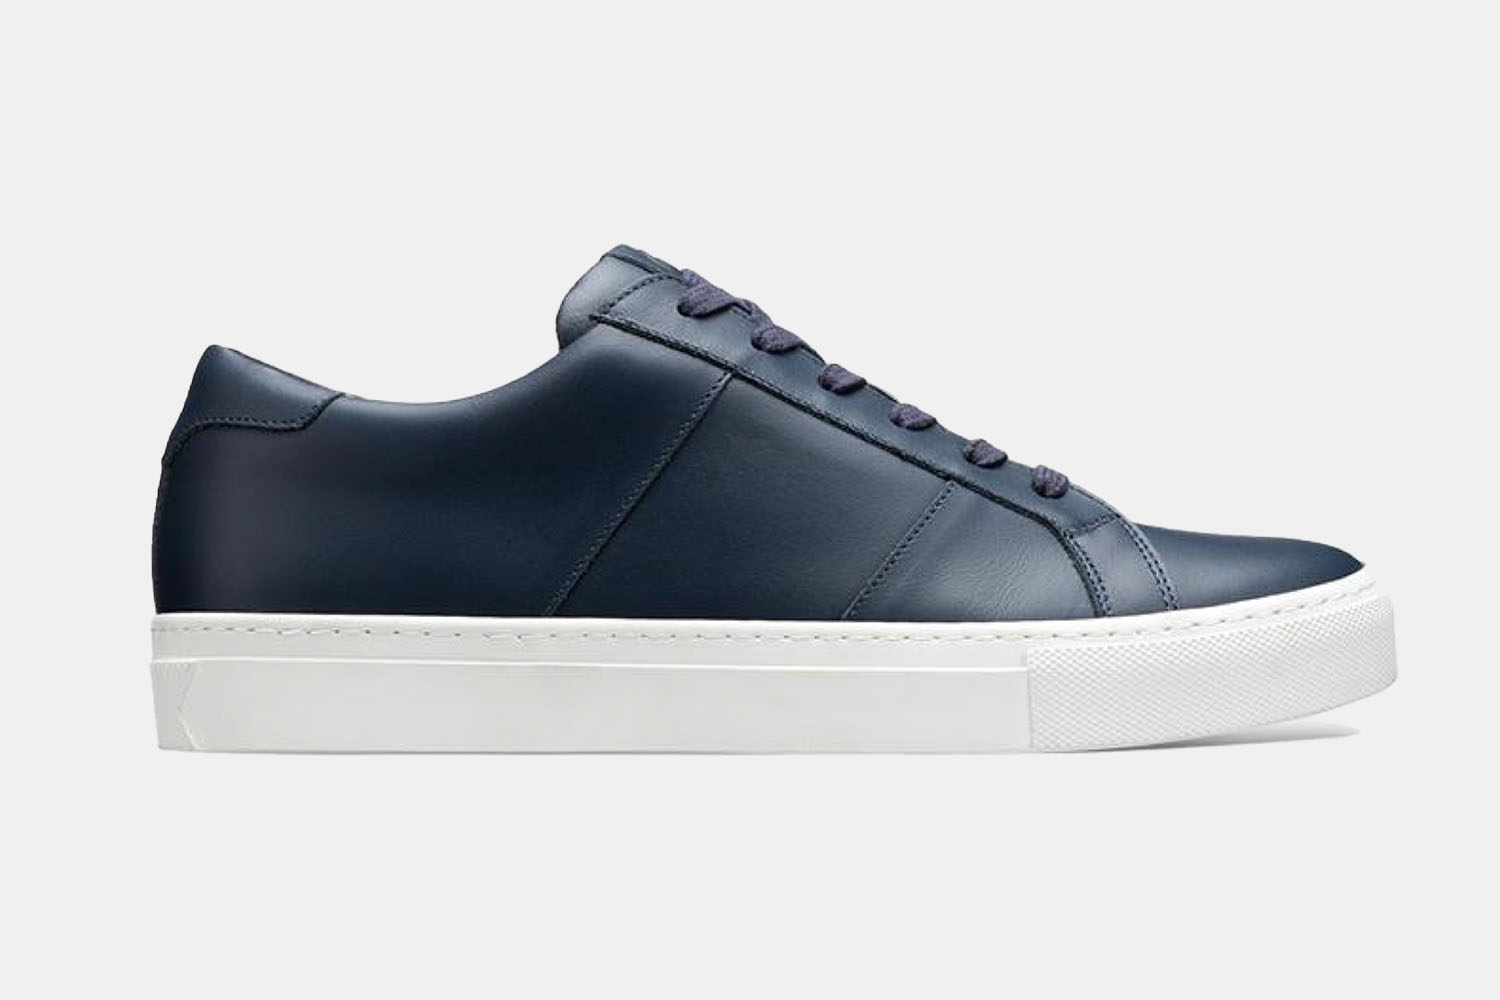 A blue leather sneaker from greats.